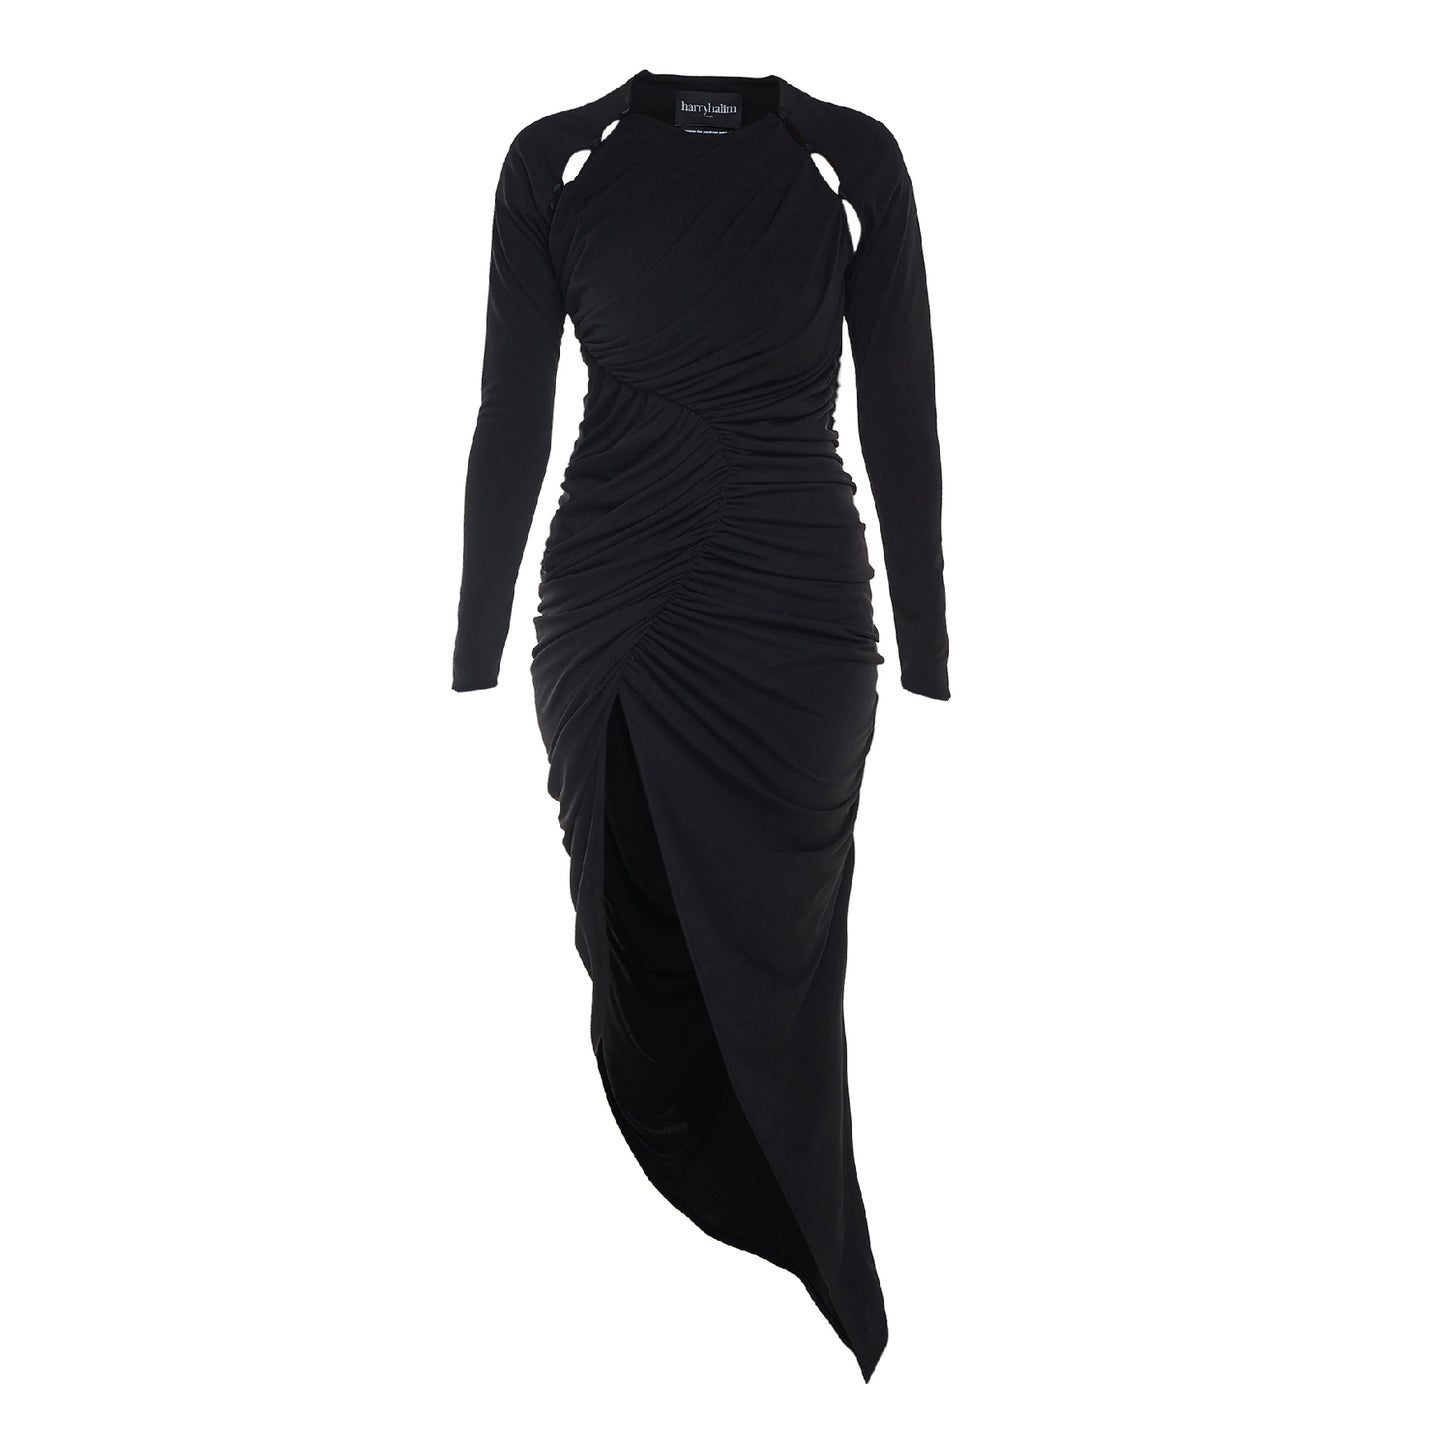 Atropos Dress